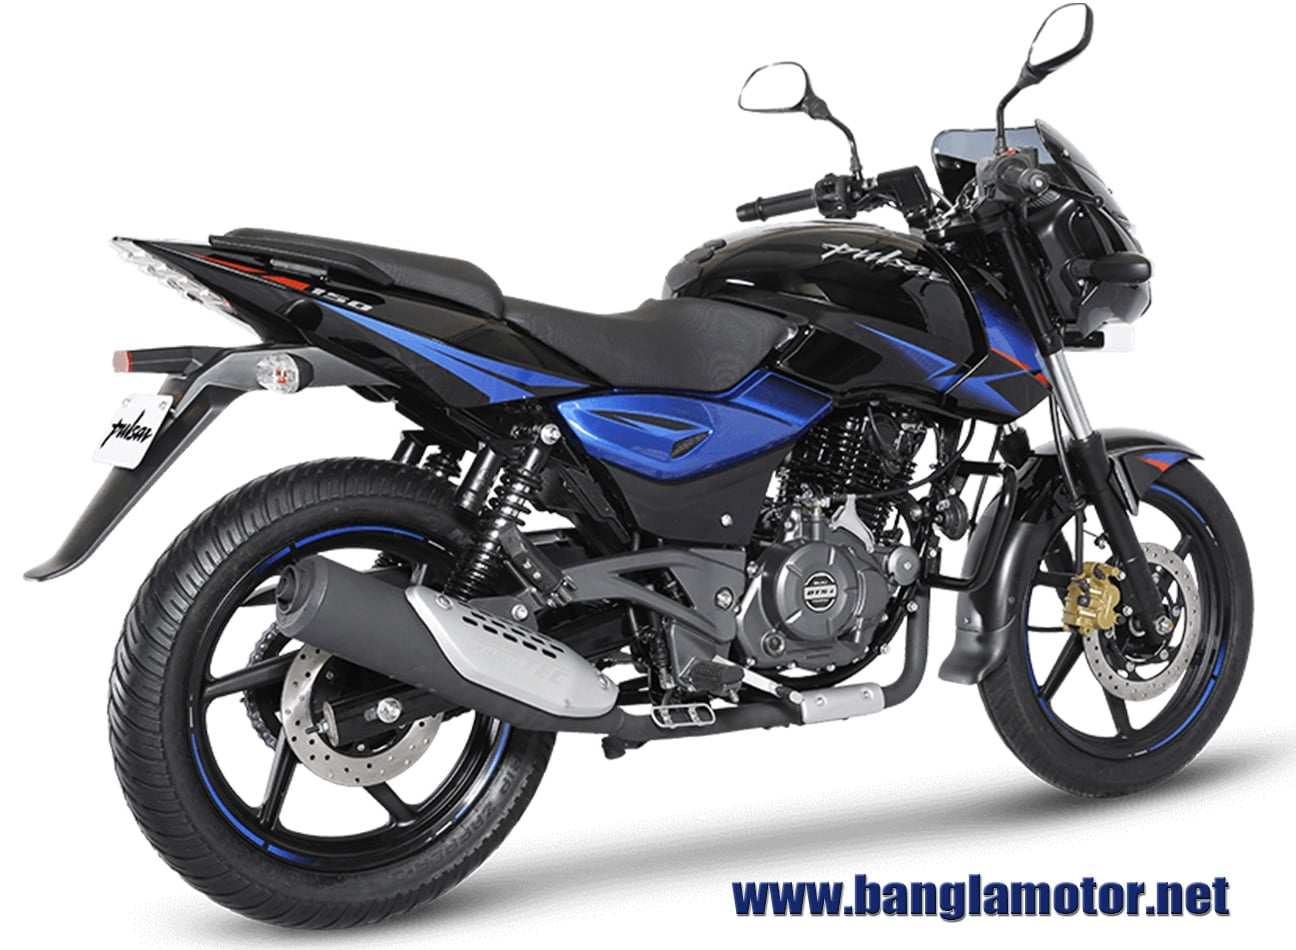 Bike Price in BD: Bajaj Pulsar 150 Price in BD